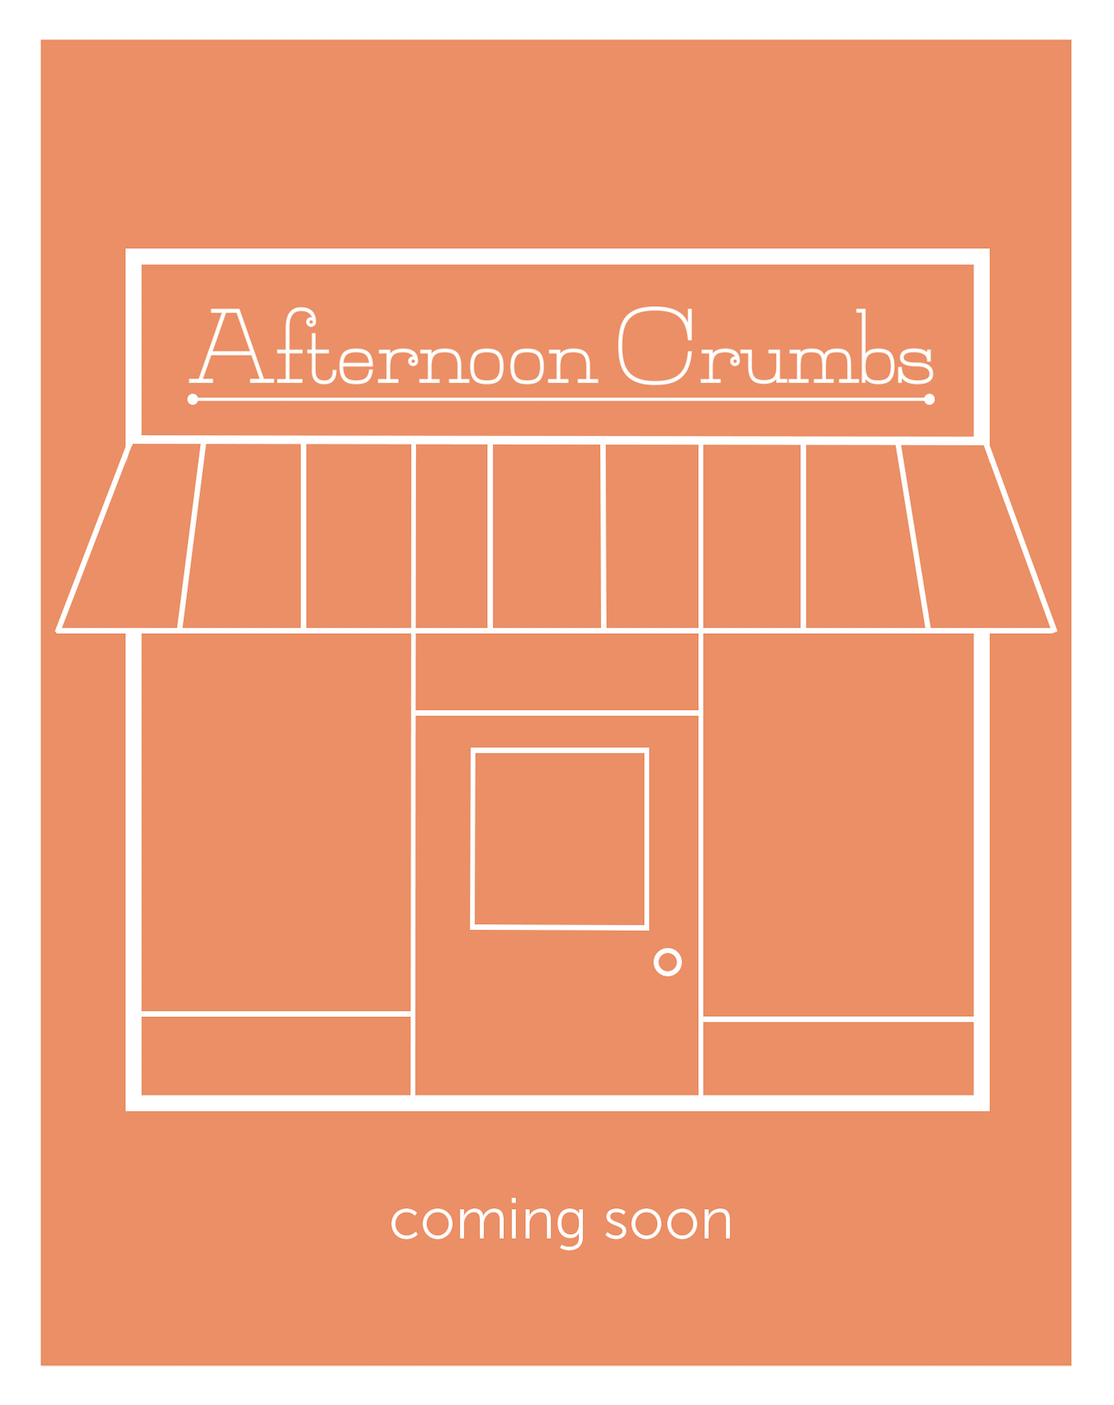 afternoon-crumbs-shop